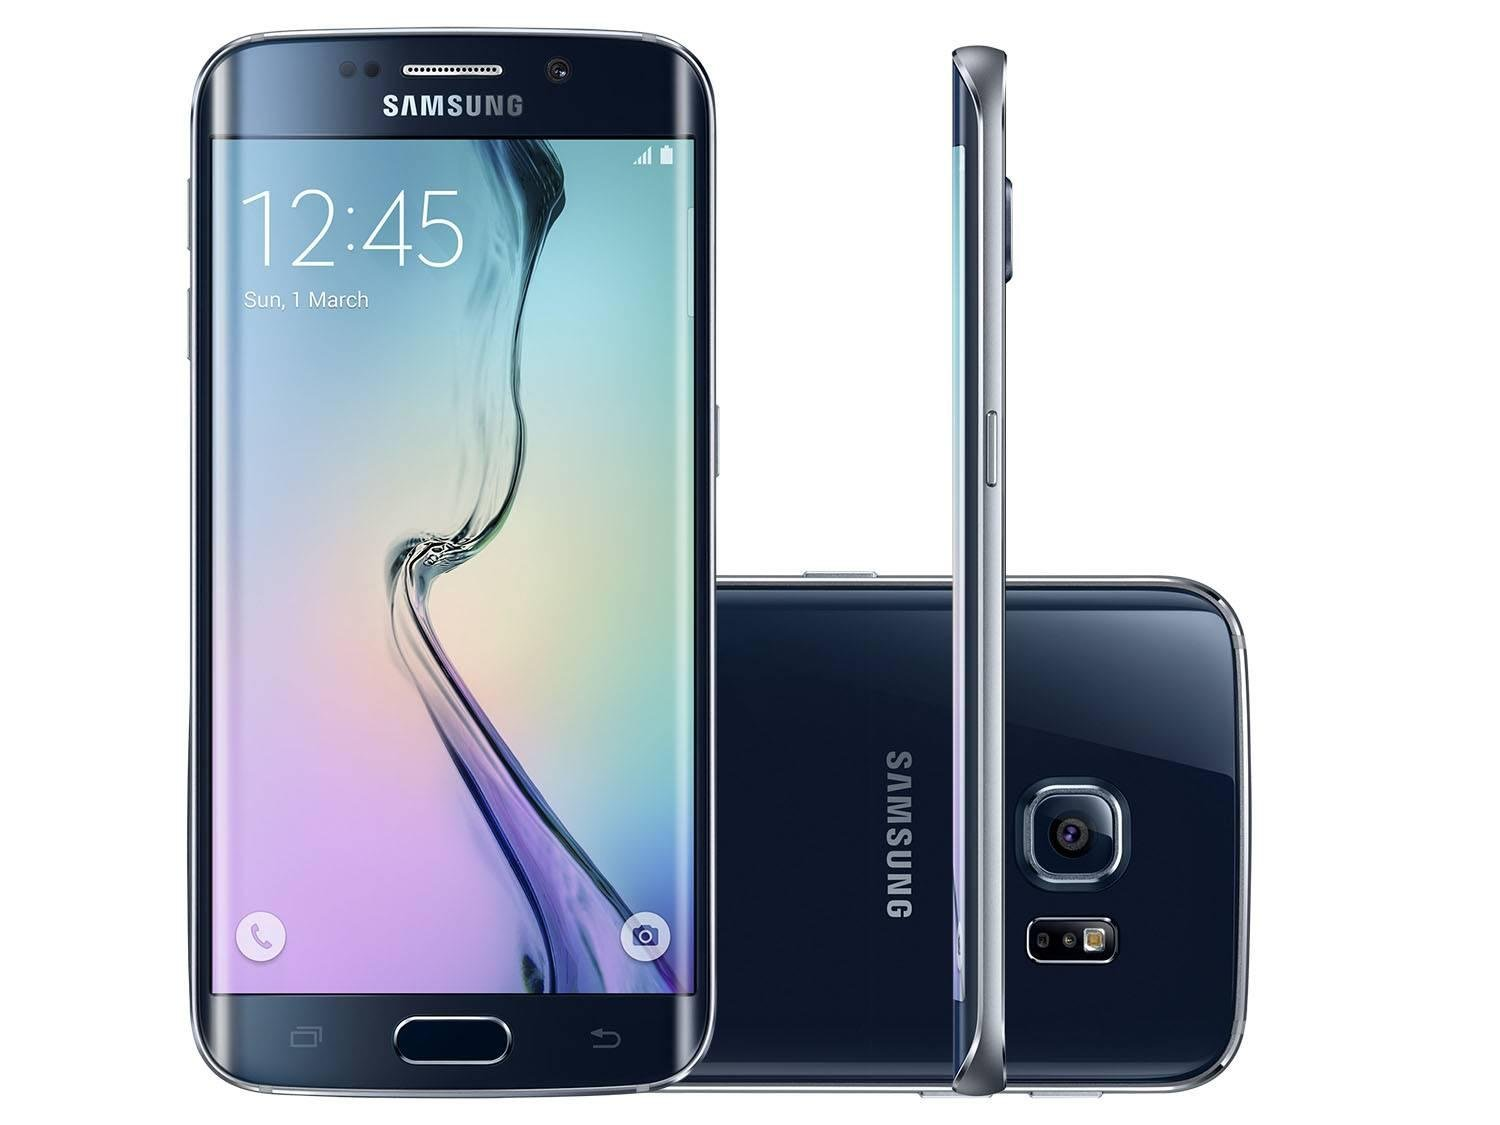 smartphone-samsung-galaxy-s6-edge-64gb-4g-android-5.0-cam.-16mp-tela-5.1-proc.-octa-core